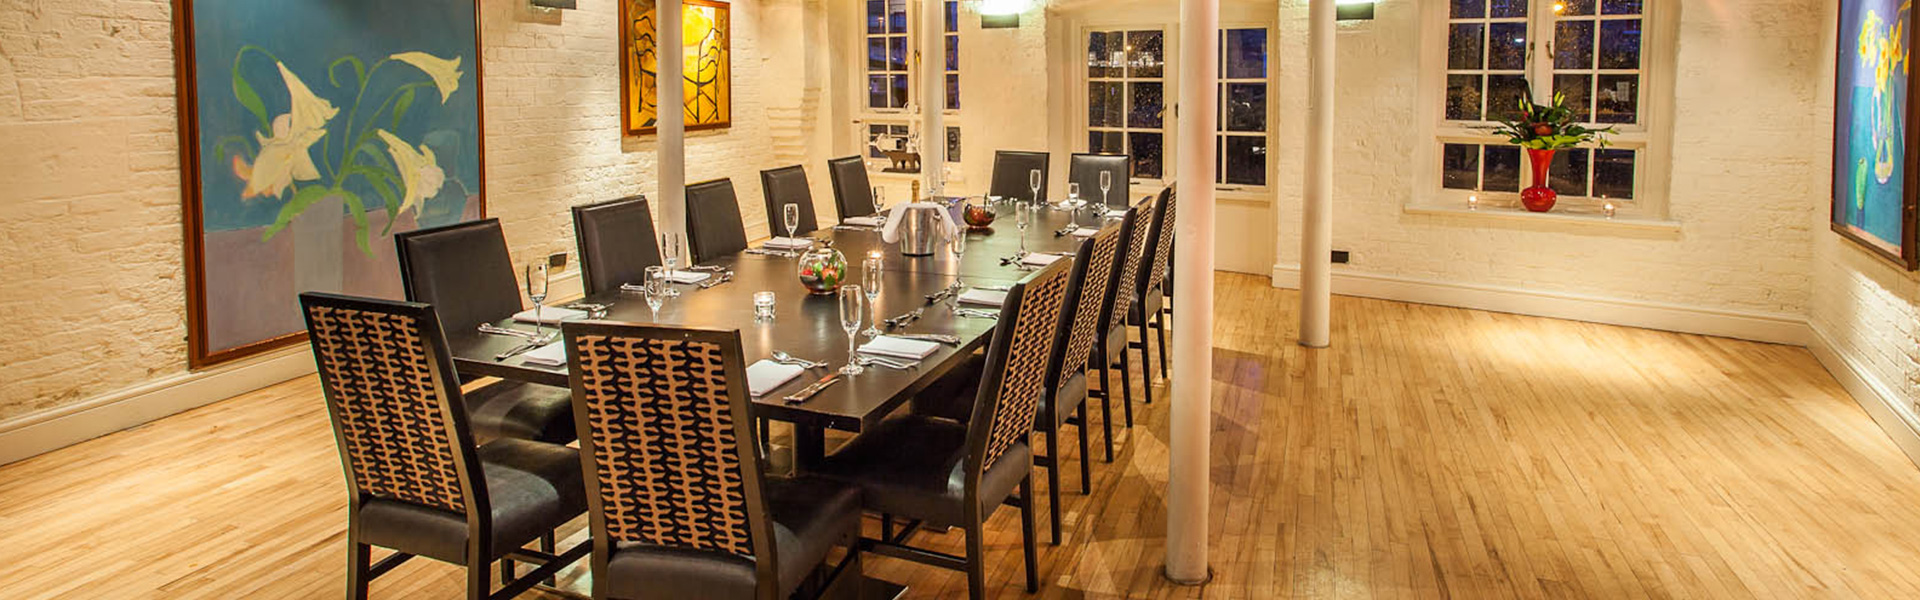 Dining and Food | 42 The Calls Hotel, Leeds | 4-Star Luxury, Boutique Suites on the River Aire